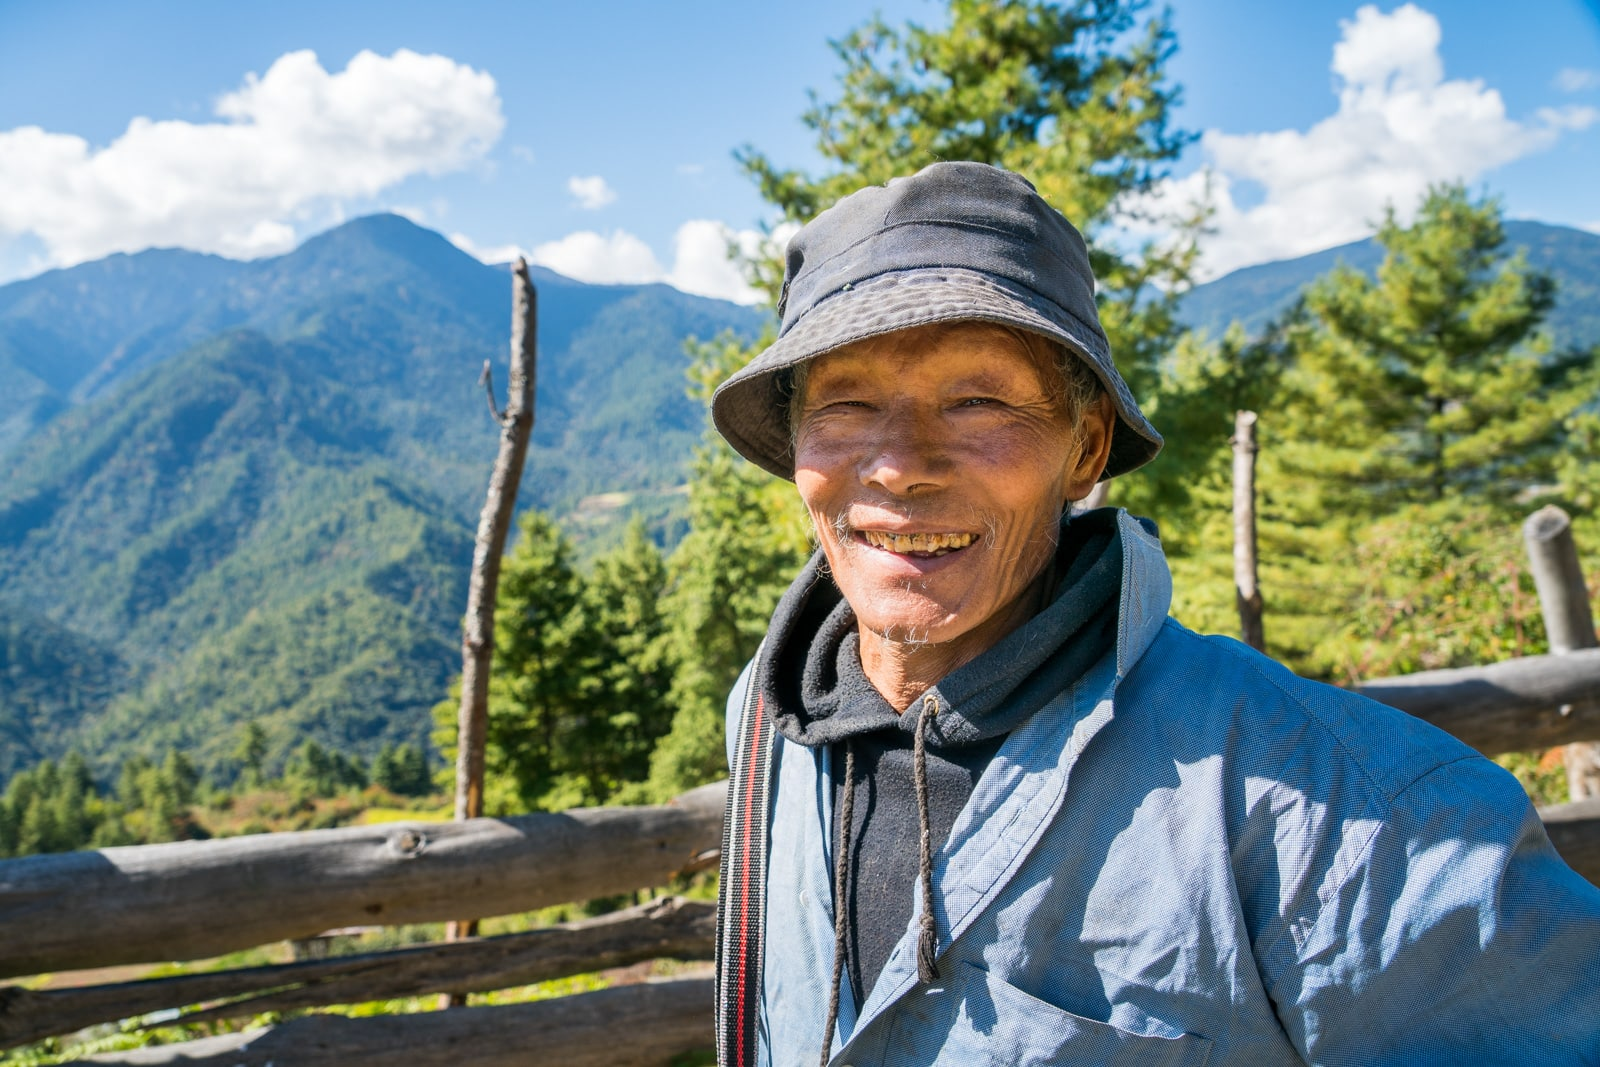 Photos of Bhutan - Jolly man on the side of the road - Lost With Purpose travel blog